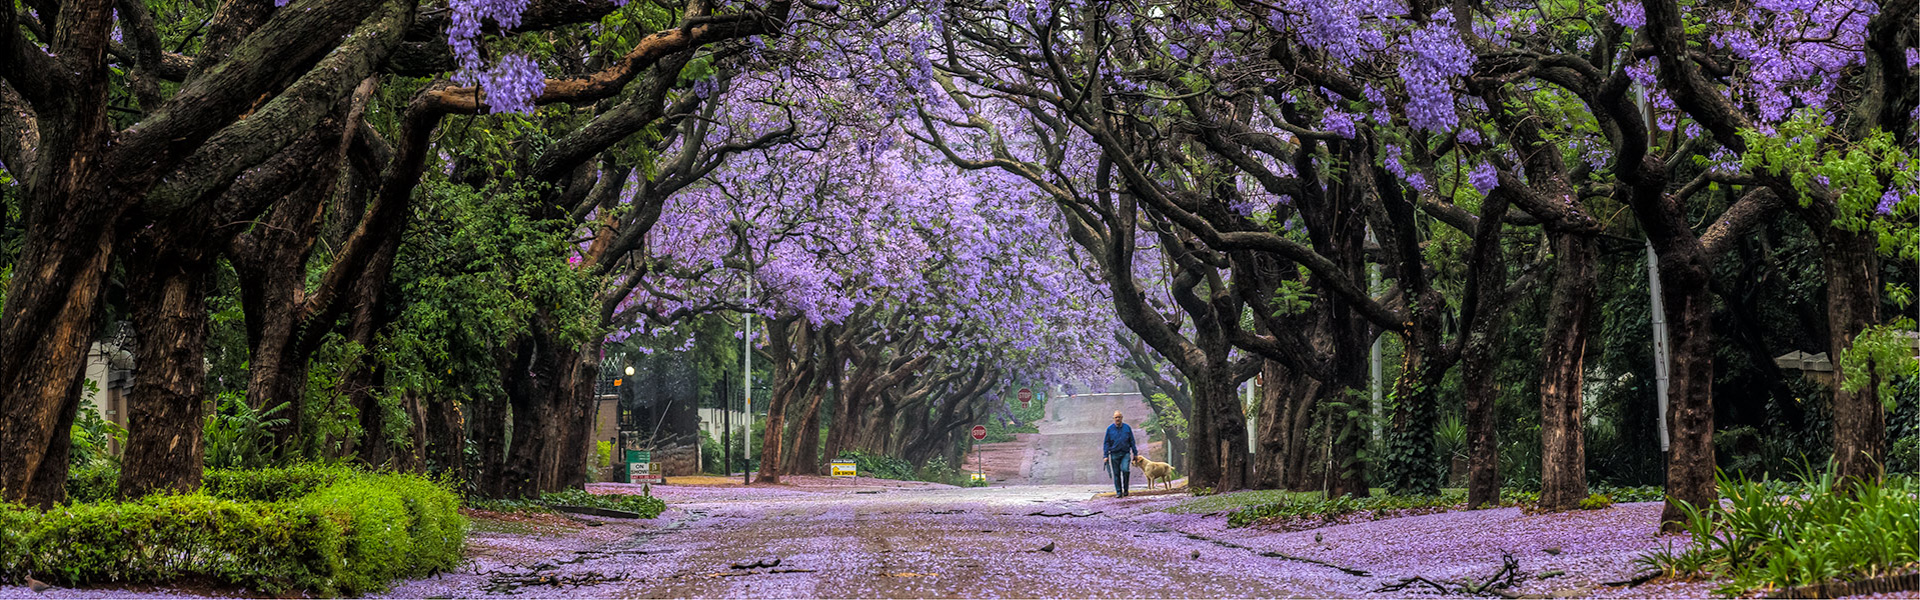 Purple splendour-Danie-Coetzee_slider